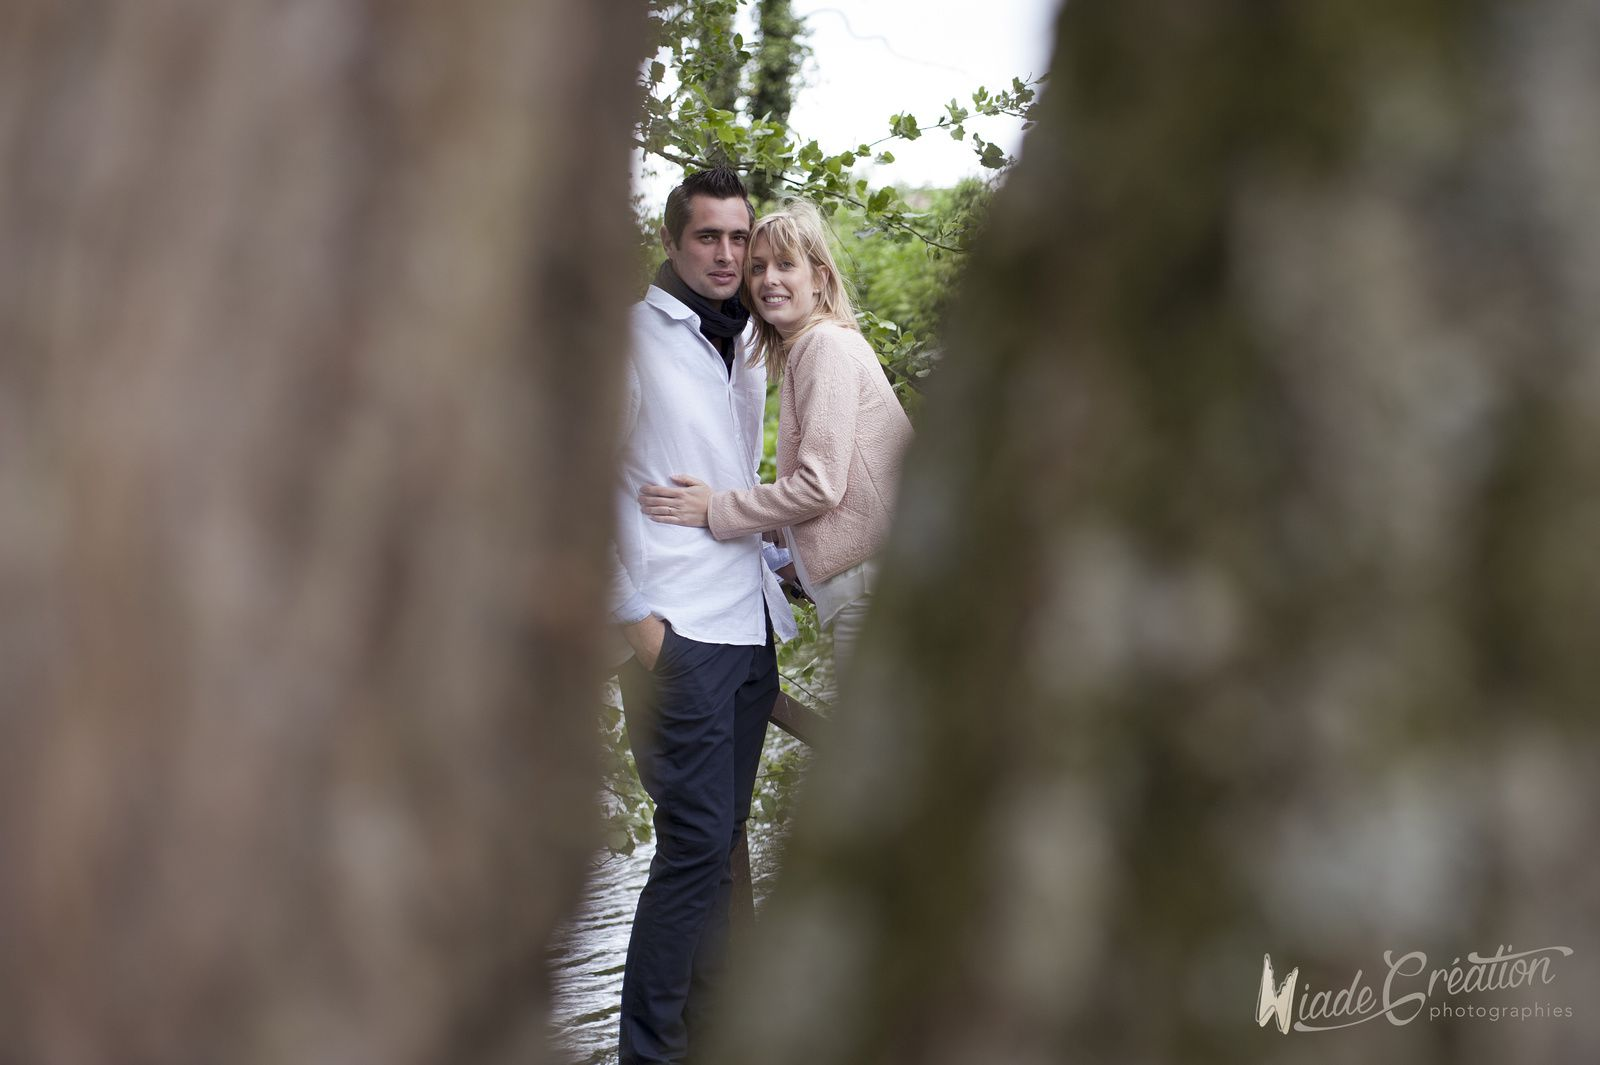 Emilie et Maxime Save the date